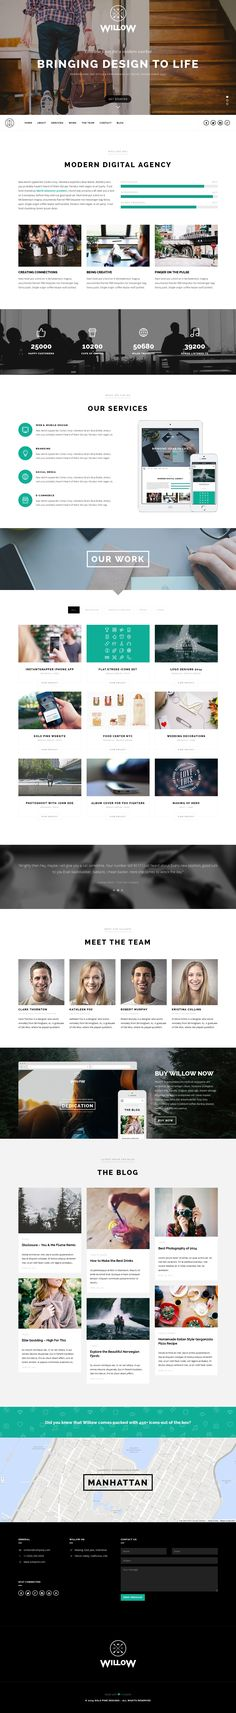 Willow - A One Page Multi-Purpose Theme #web #design